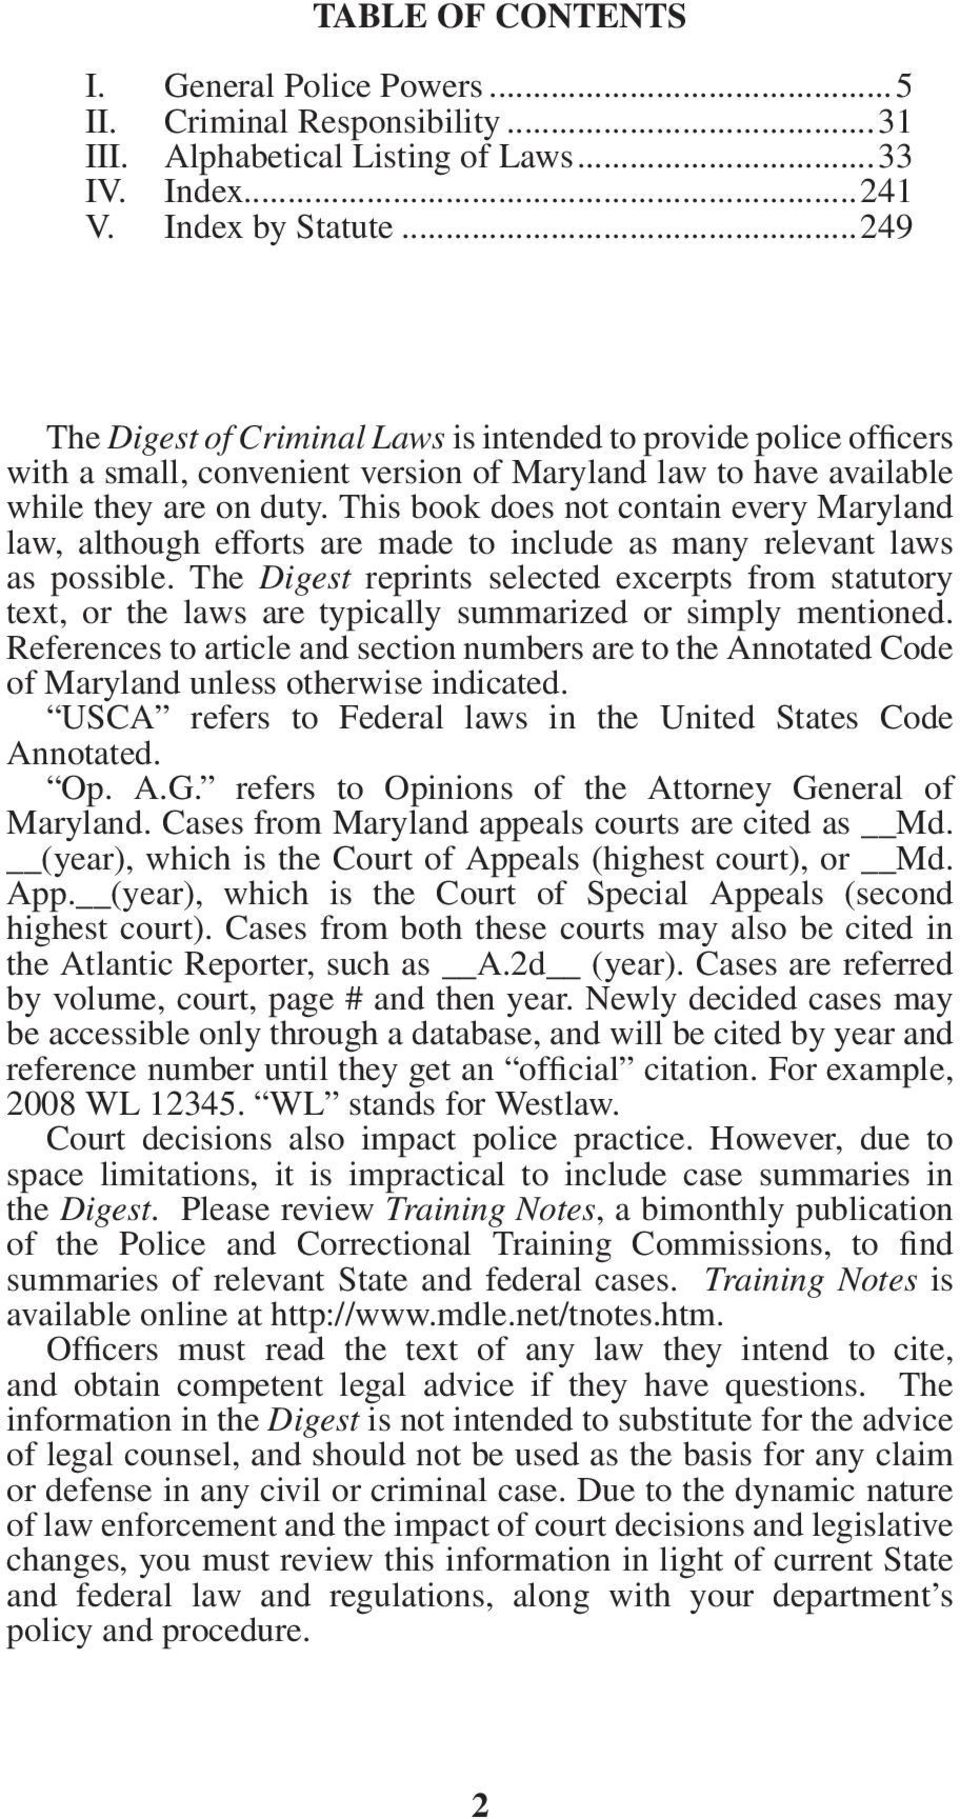 This book does not contain every Maryland law, although efforts are made to include as many relevant laws as possible.